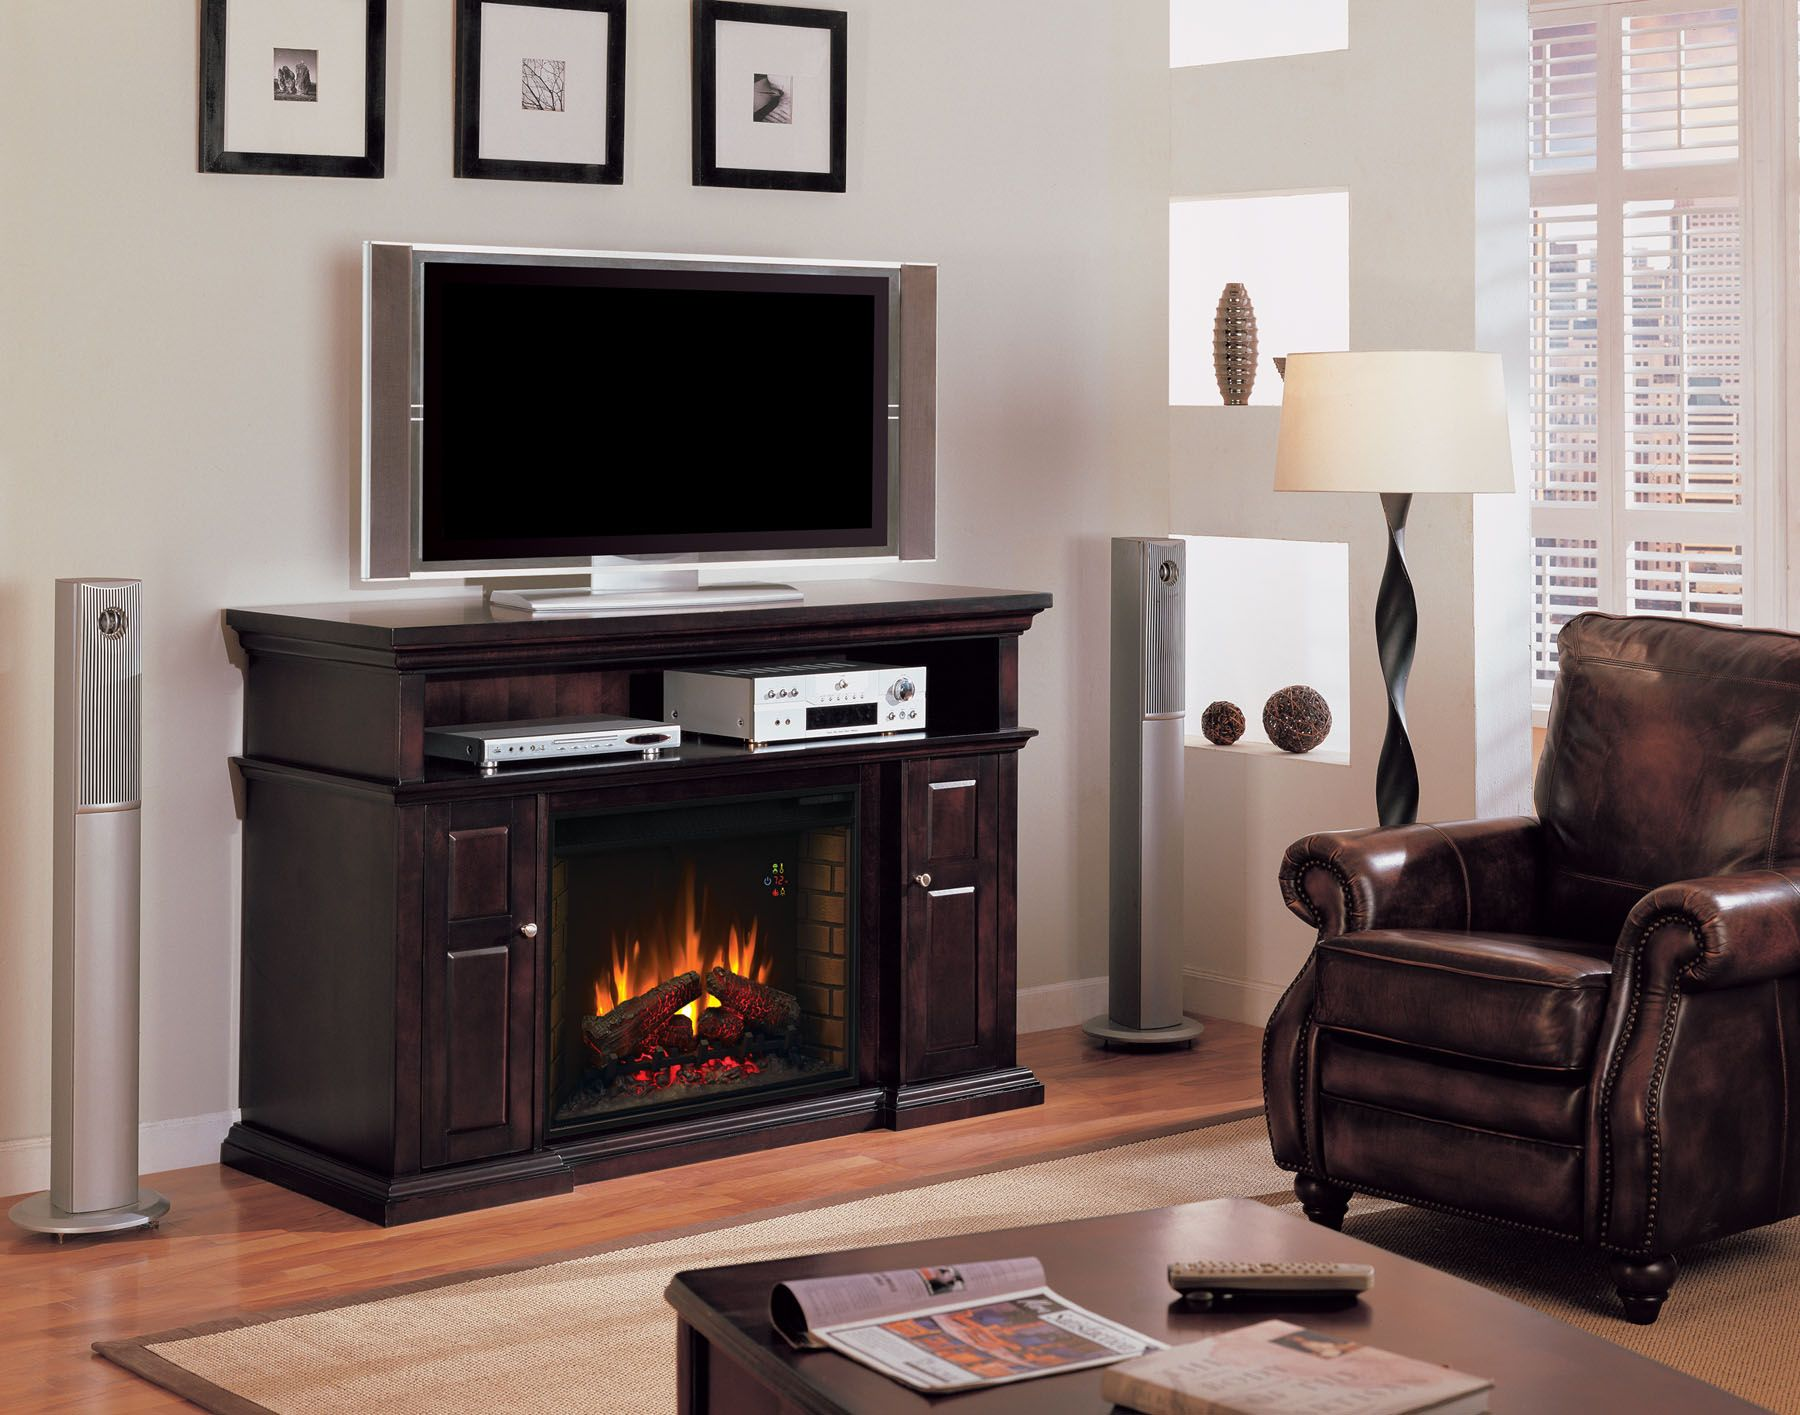 Montgomery 26in electric fireplace and tv stand cherry 26mm2490 c233 - Pasadena Home Theater Provides Audio Video Component And Media Storage Surrounding A 28